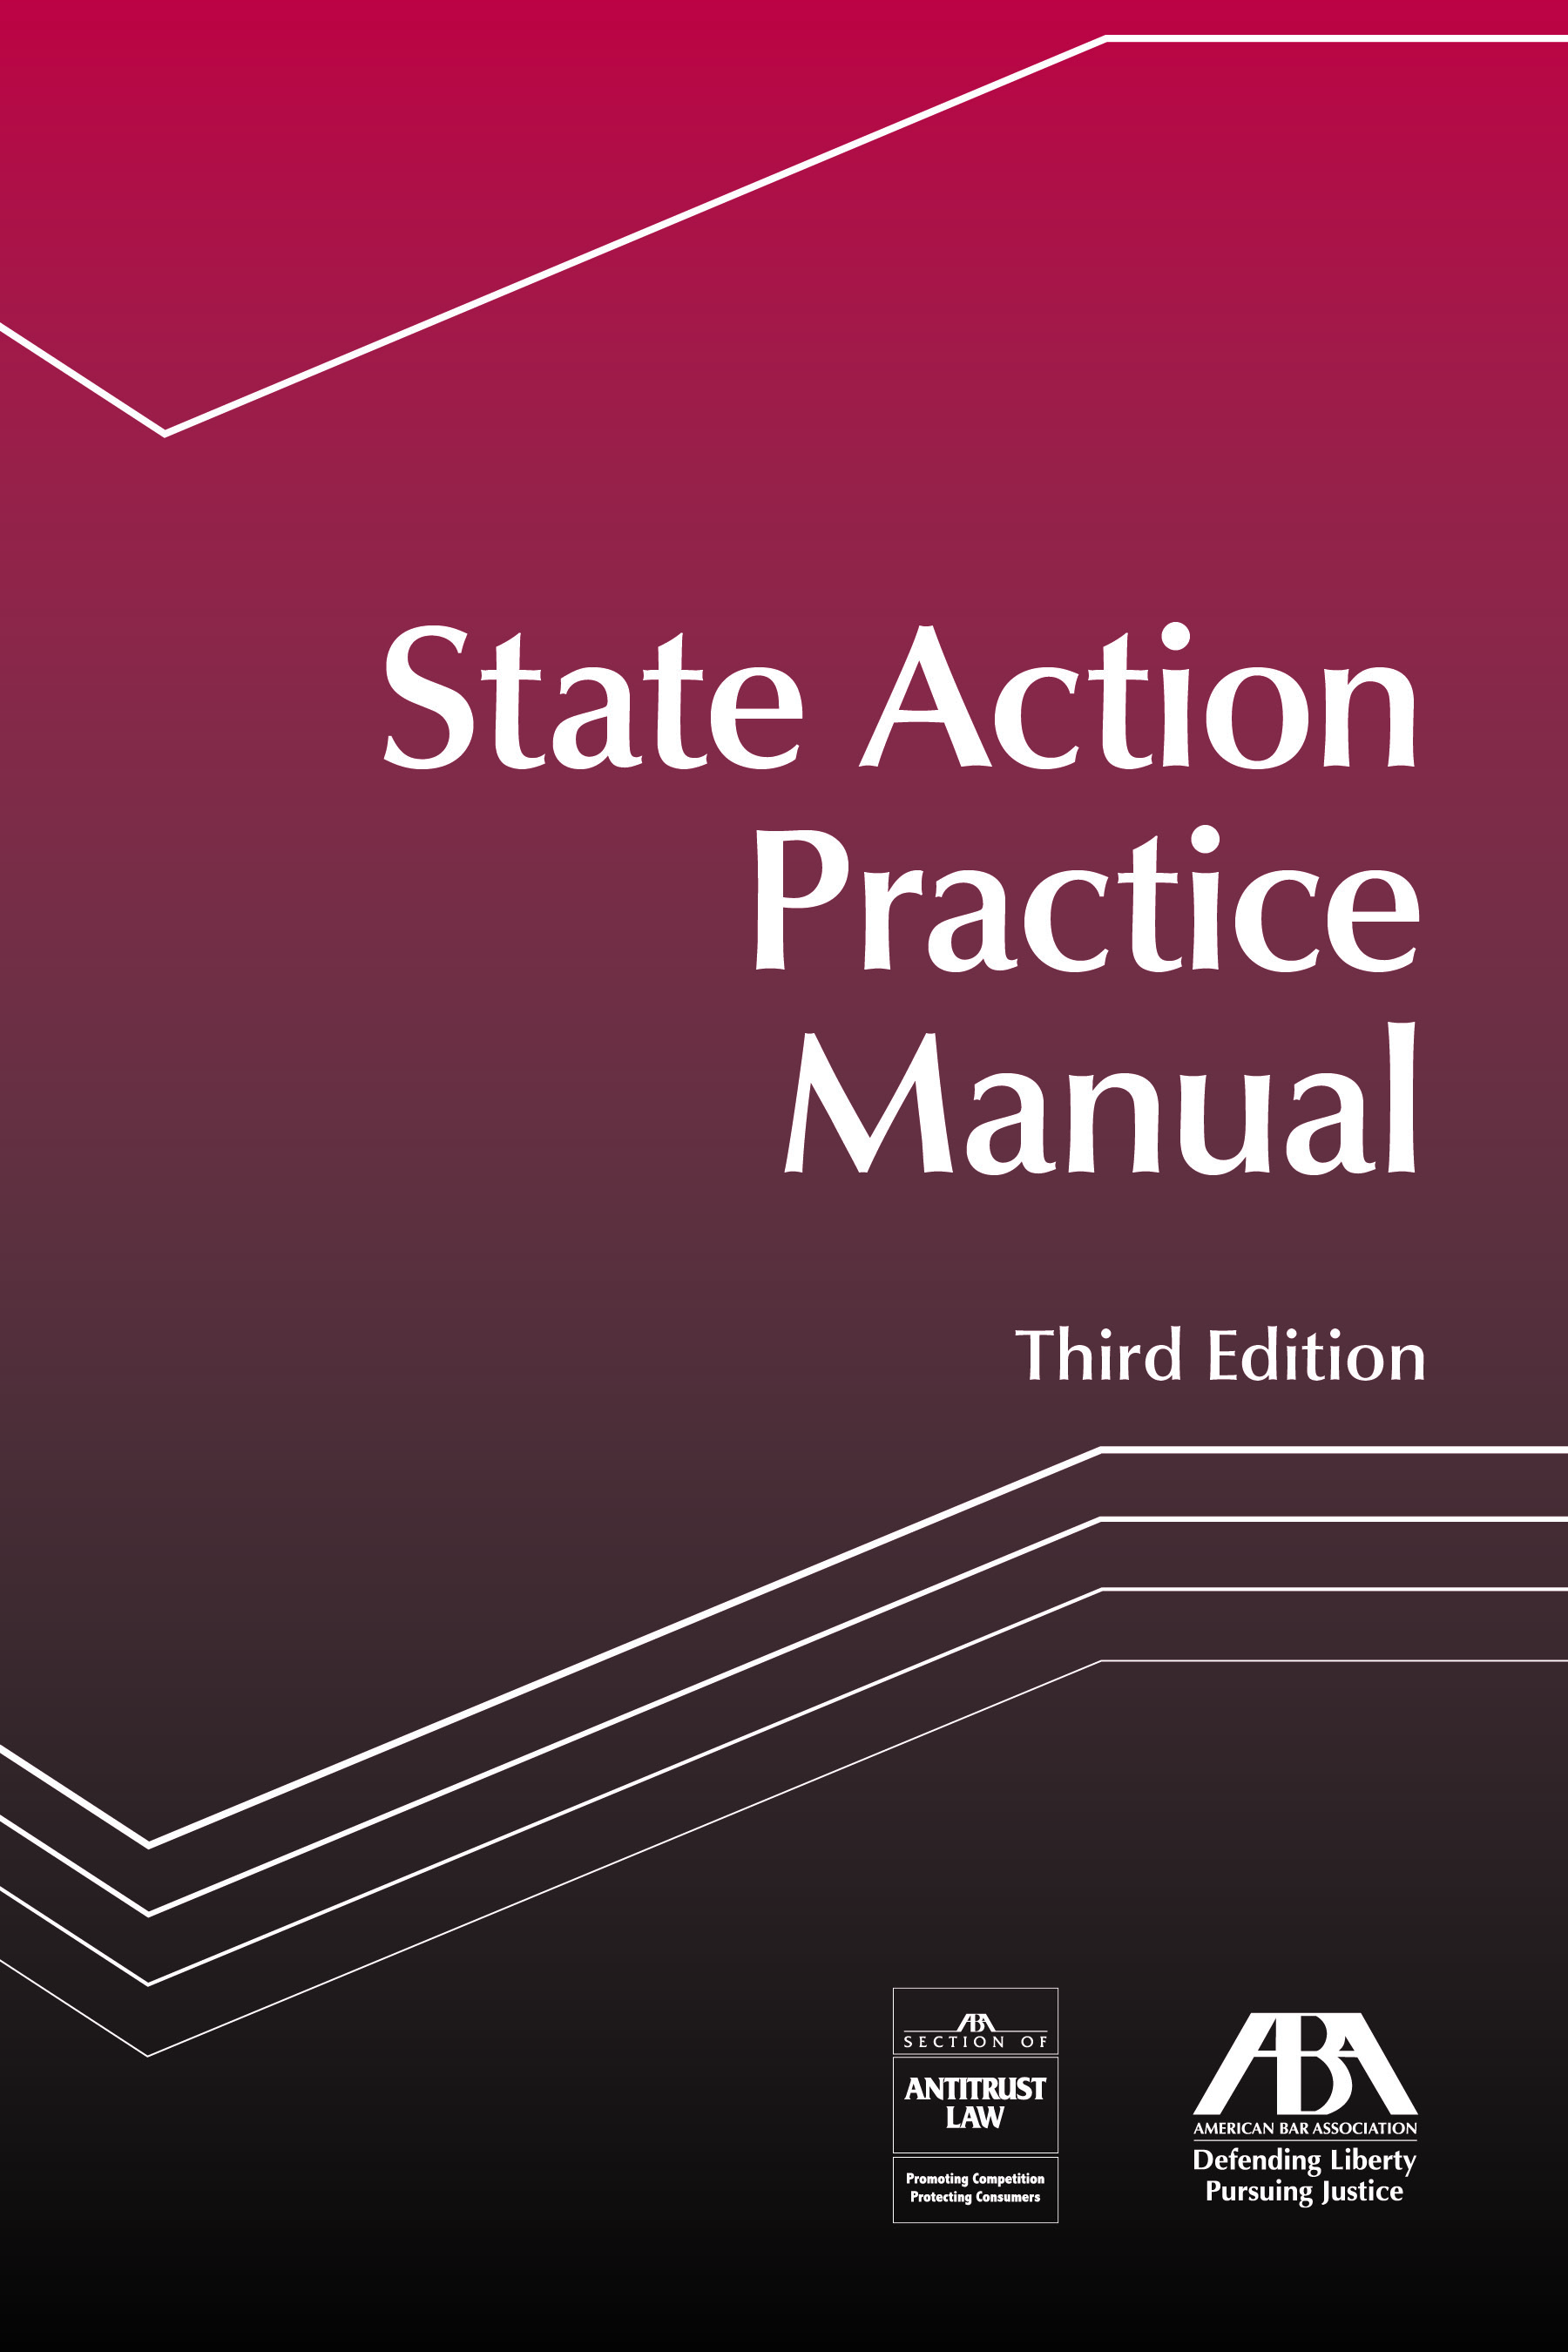 State Action Practice Manual, Third Edition